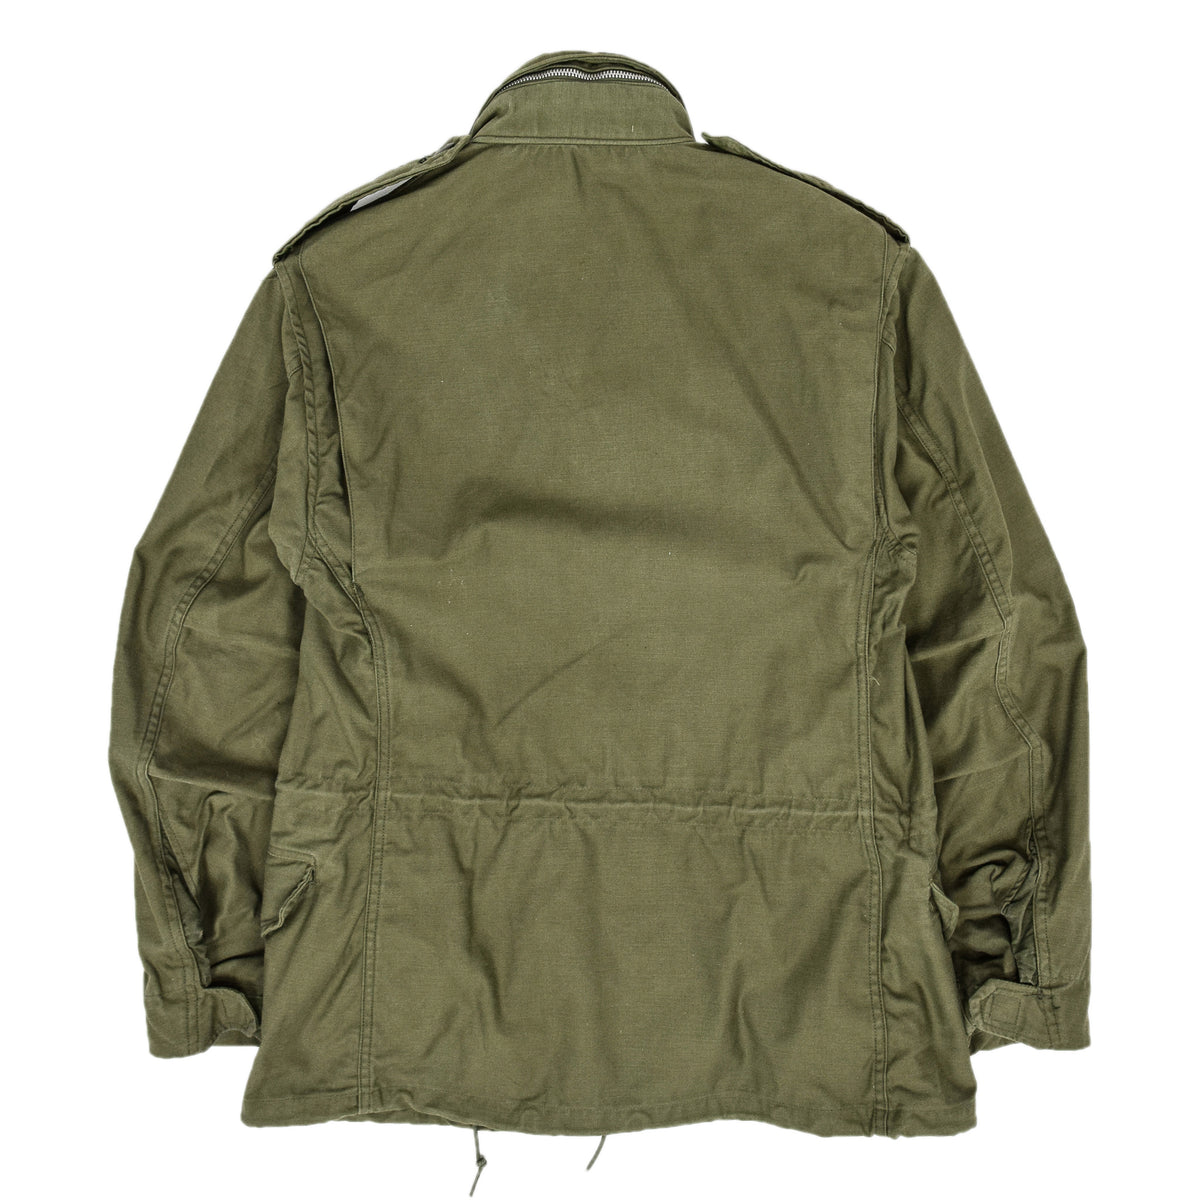 Vintage 70s Alpha Industries Vietnam M-65 Man's Field Military Jacket Green S Short back